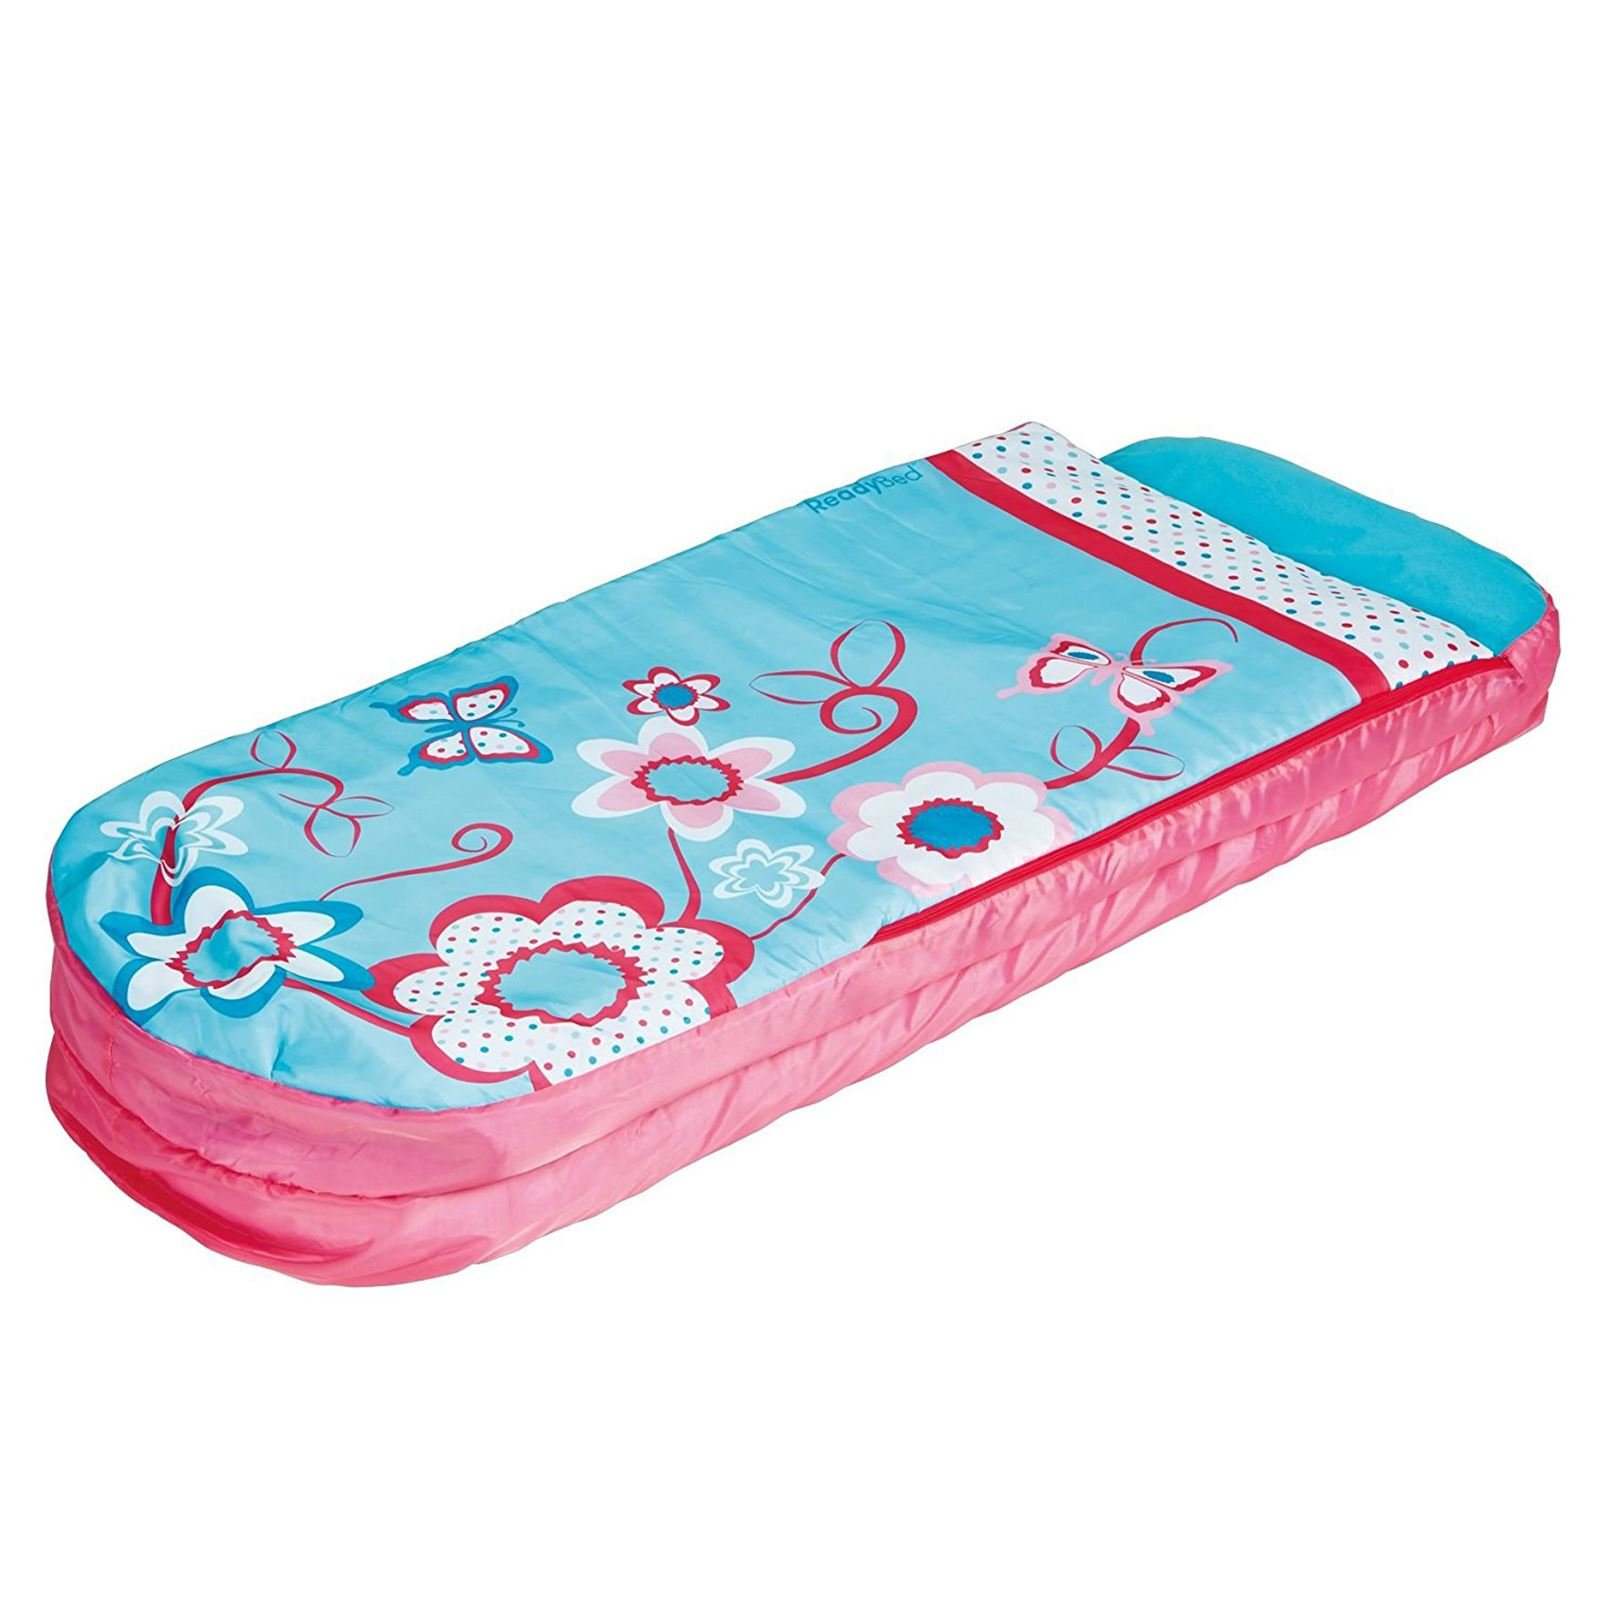 Worlds Apart Flowers Girls Junior ReadyBed - Kids Airbed and Sleeping Bag in one